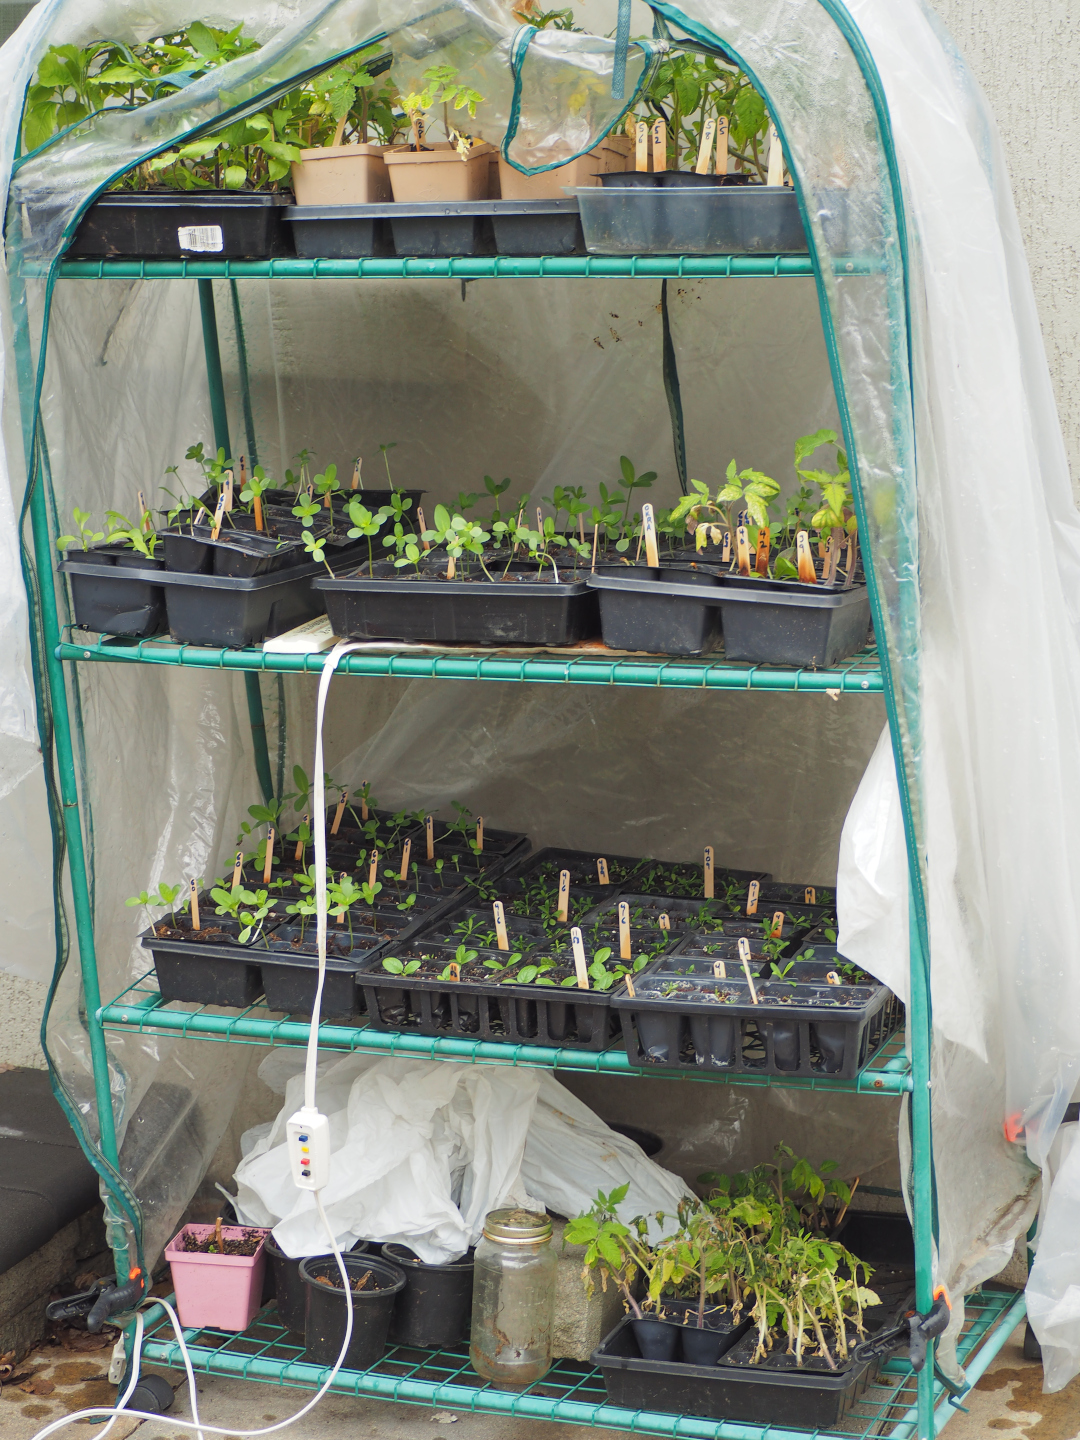 Flats of seedlings growing in a small greenhouse